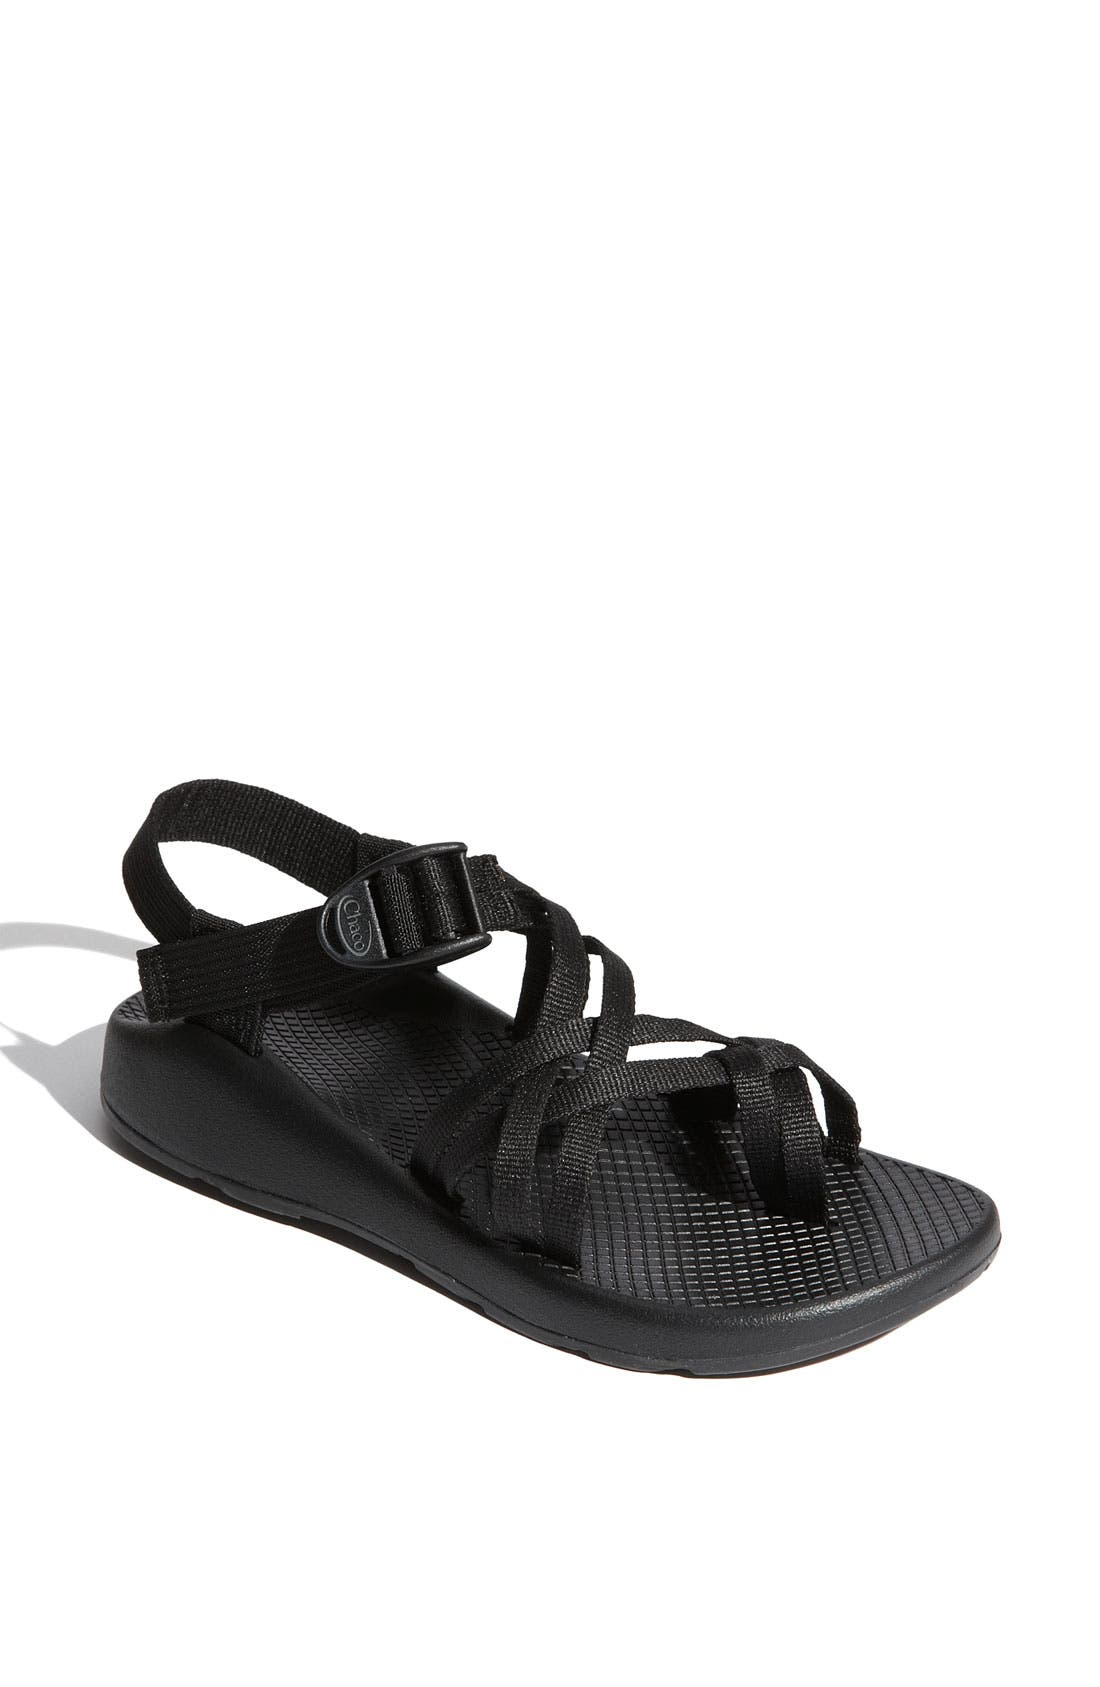 Main Image - Chaco 'ZX2' Water Sandal